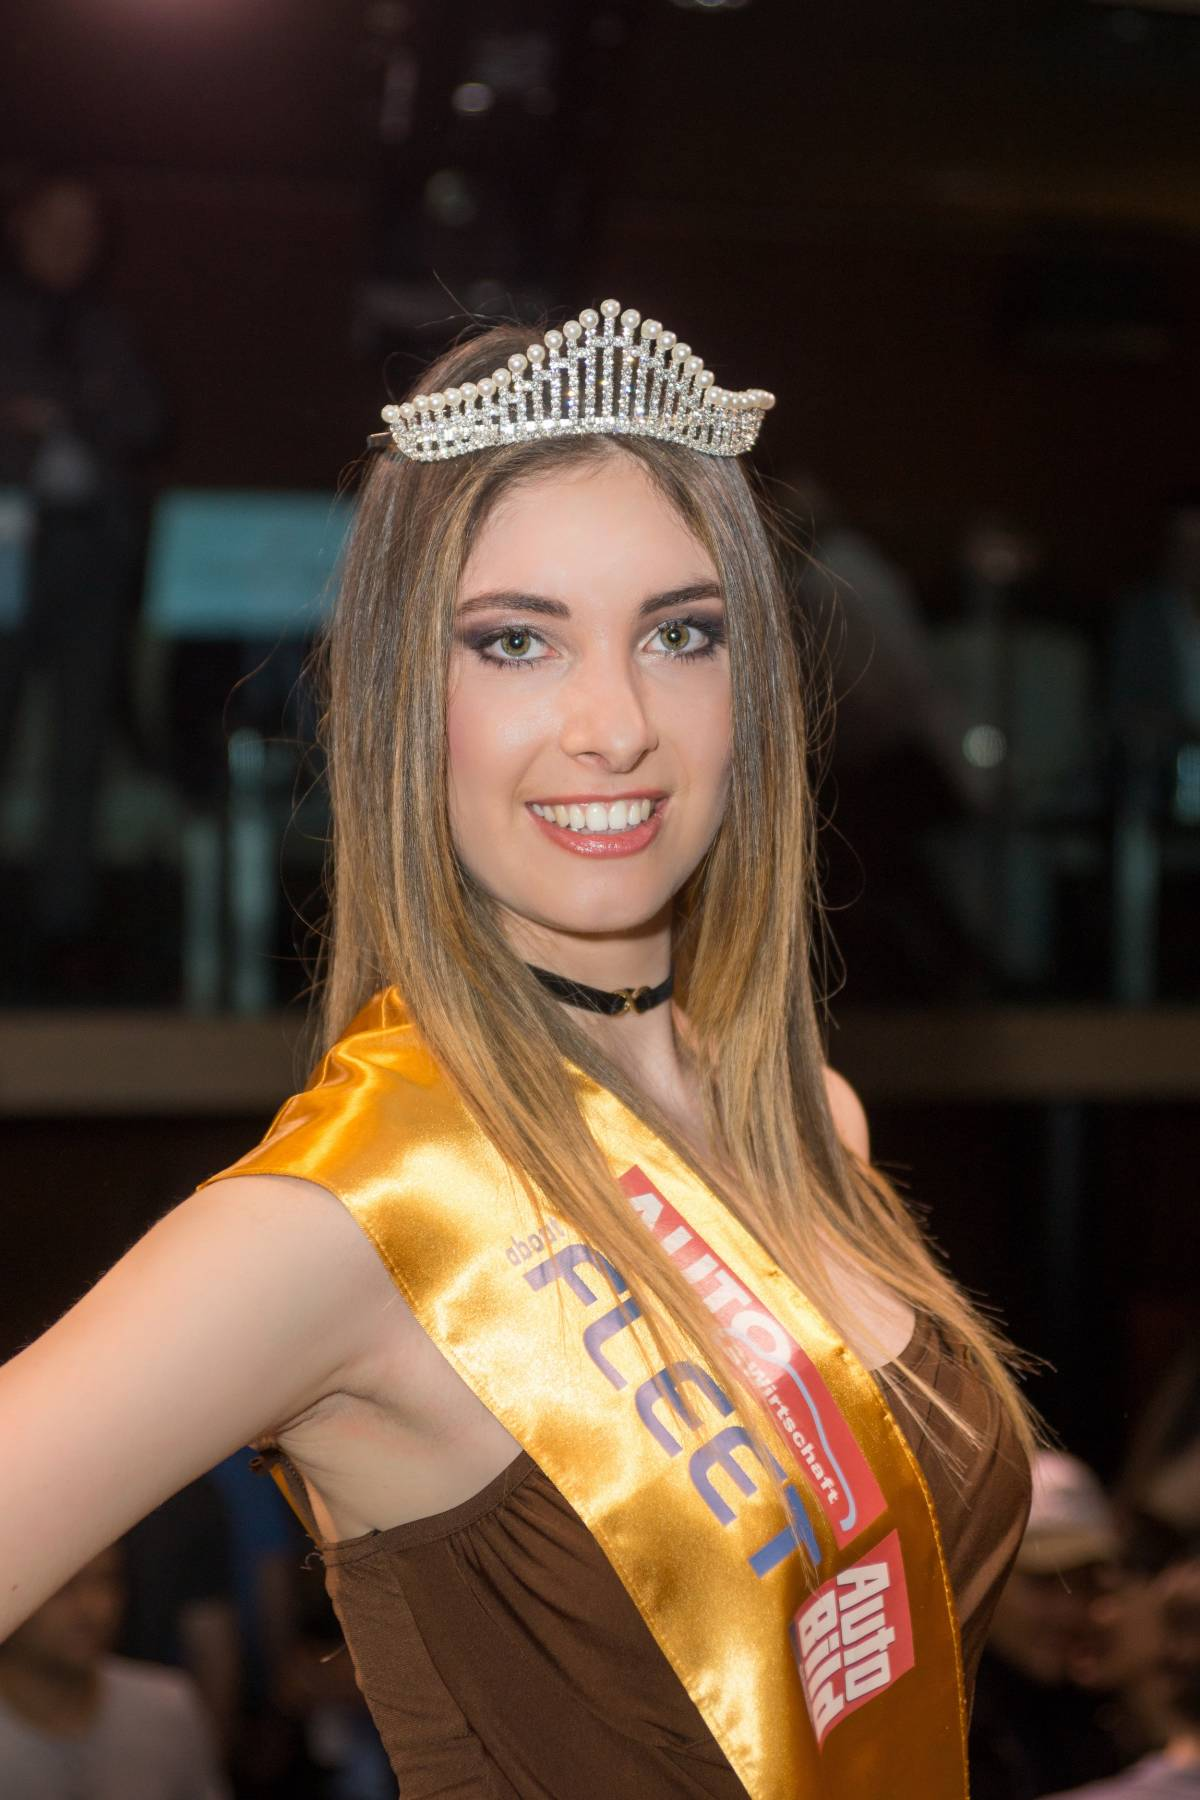 Michela Russo ist Miss Auto-Salon 2017